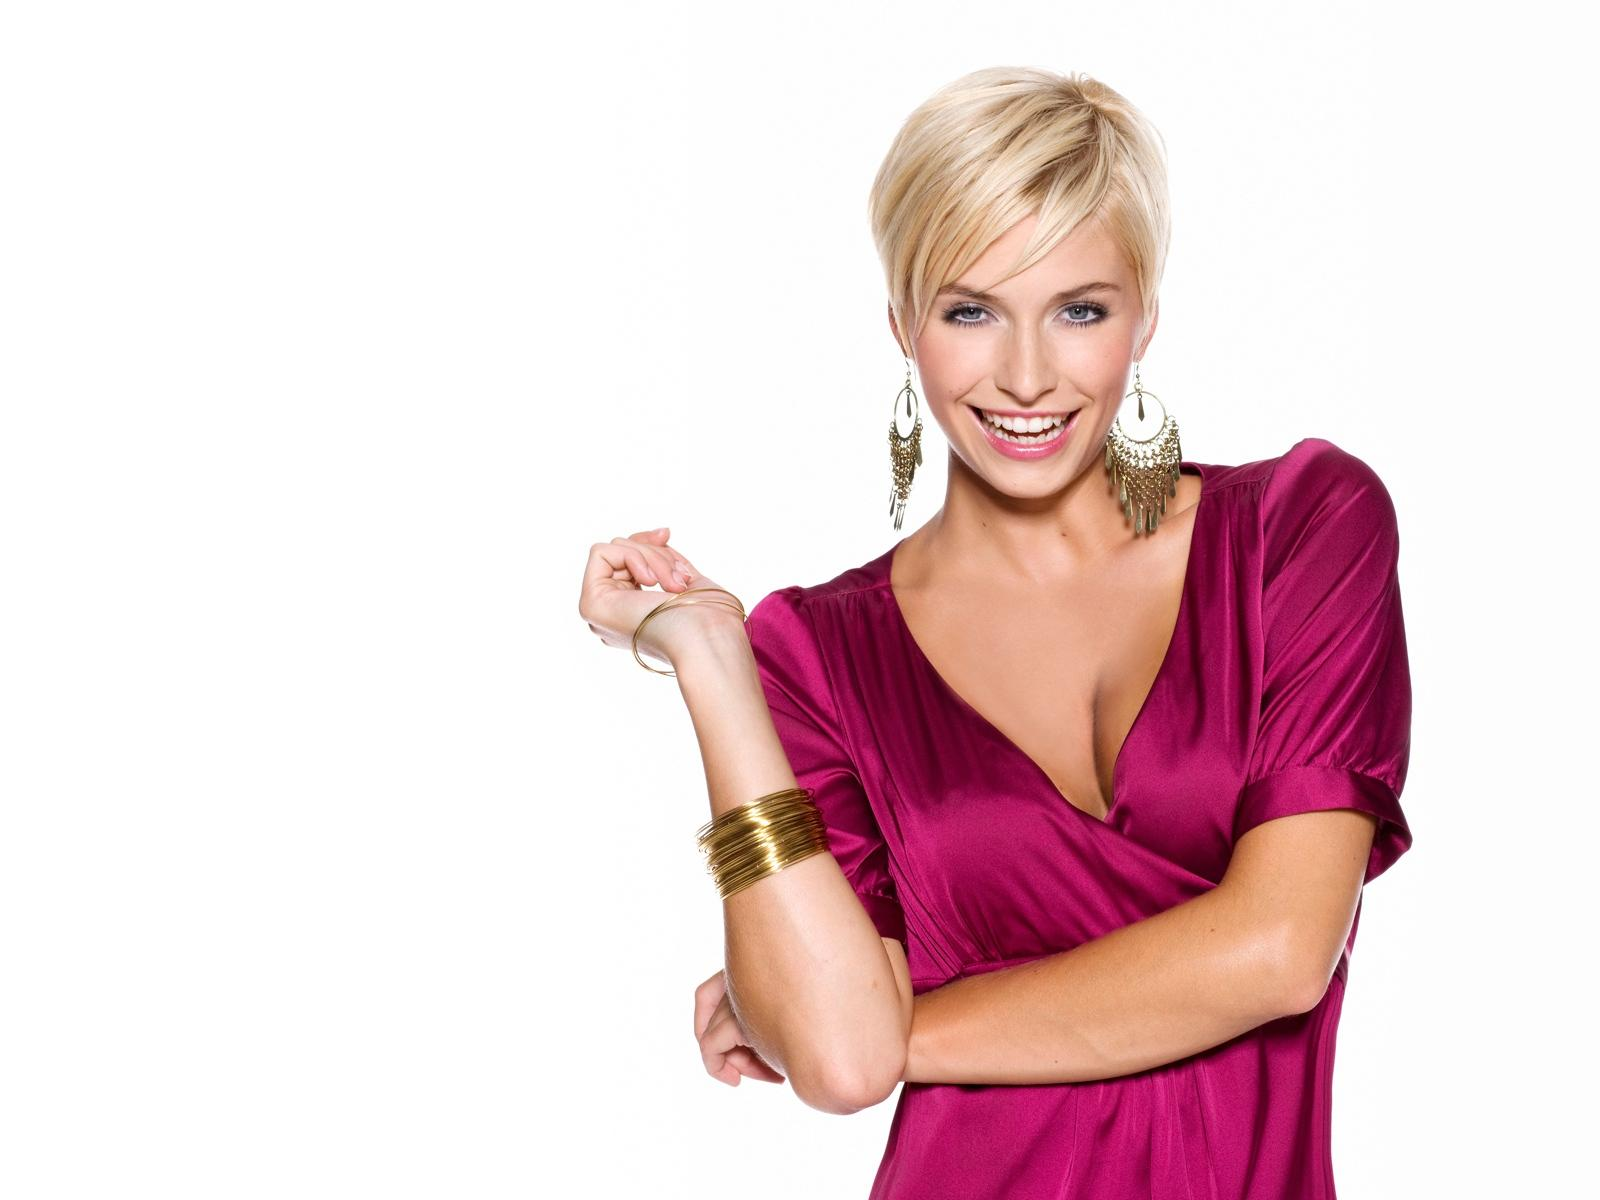 Pictures Lena Gercke female Girls young woman